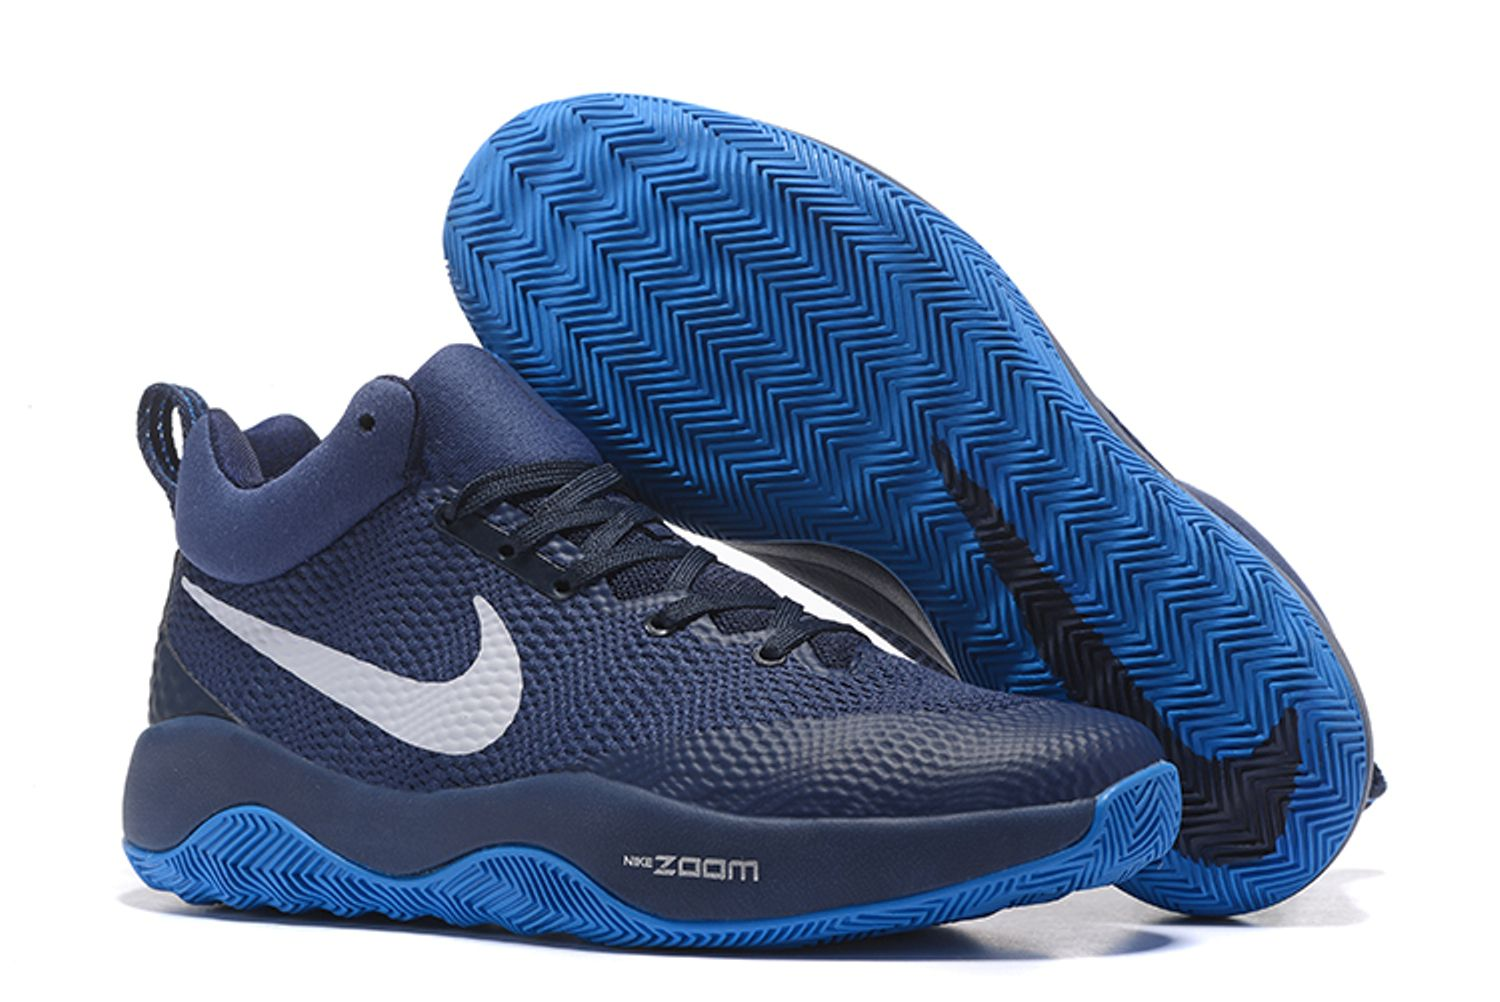 Nike ZOOM HYPER REV 2017 Blue Running Shoes - Buy Nike ZOOM HYPER REV 2017  Blue Running Shoes Online at Best Prices in India on Snapdeal 90bd92b28